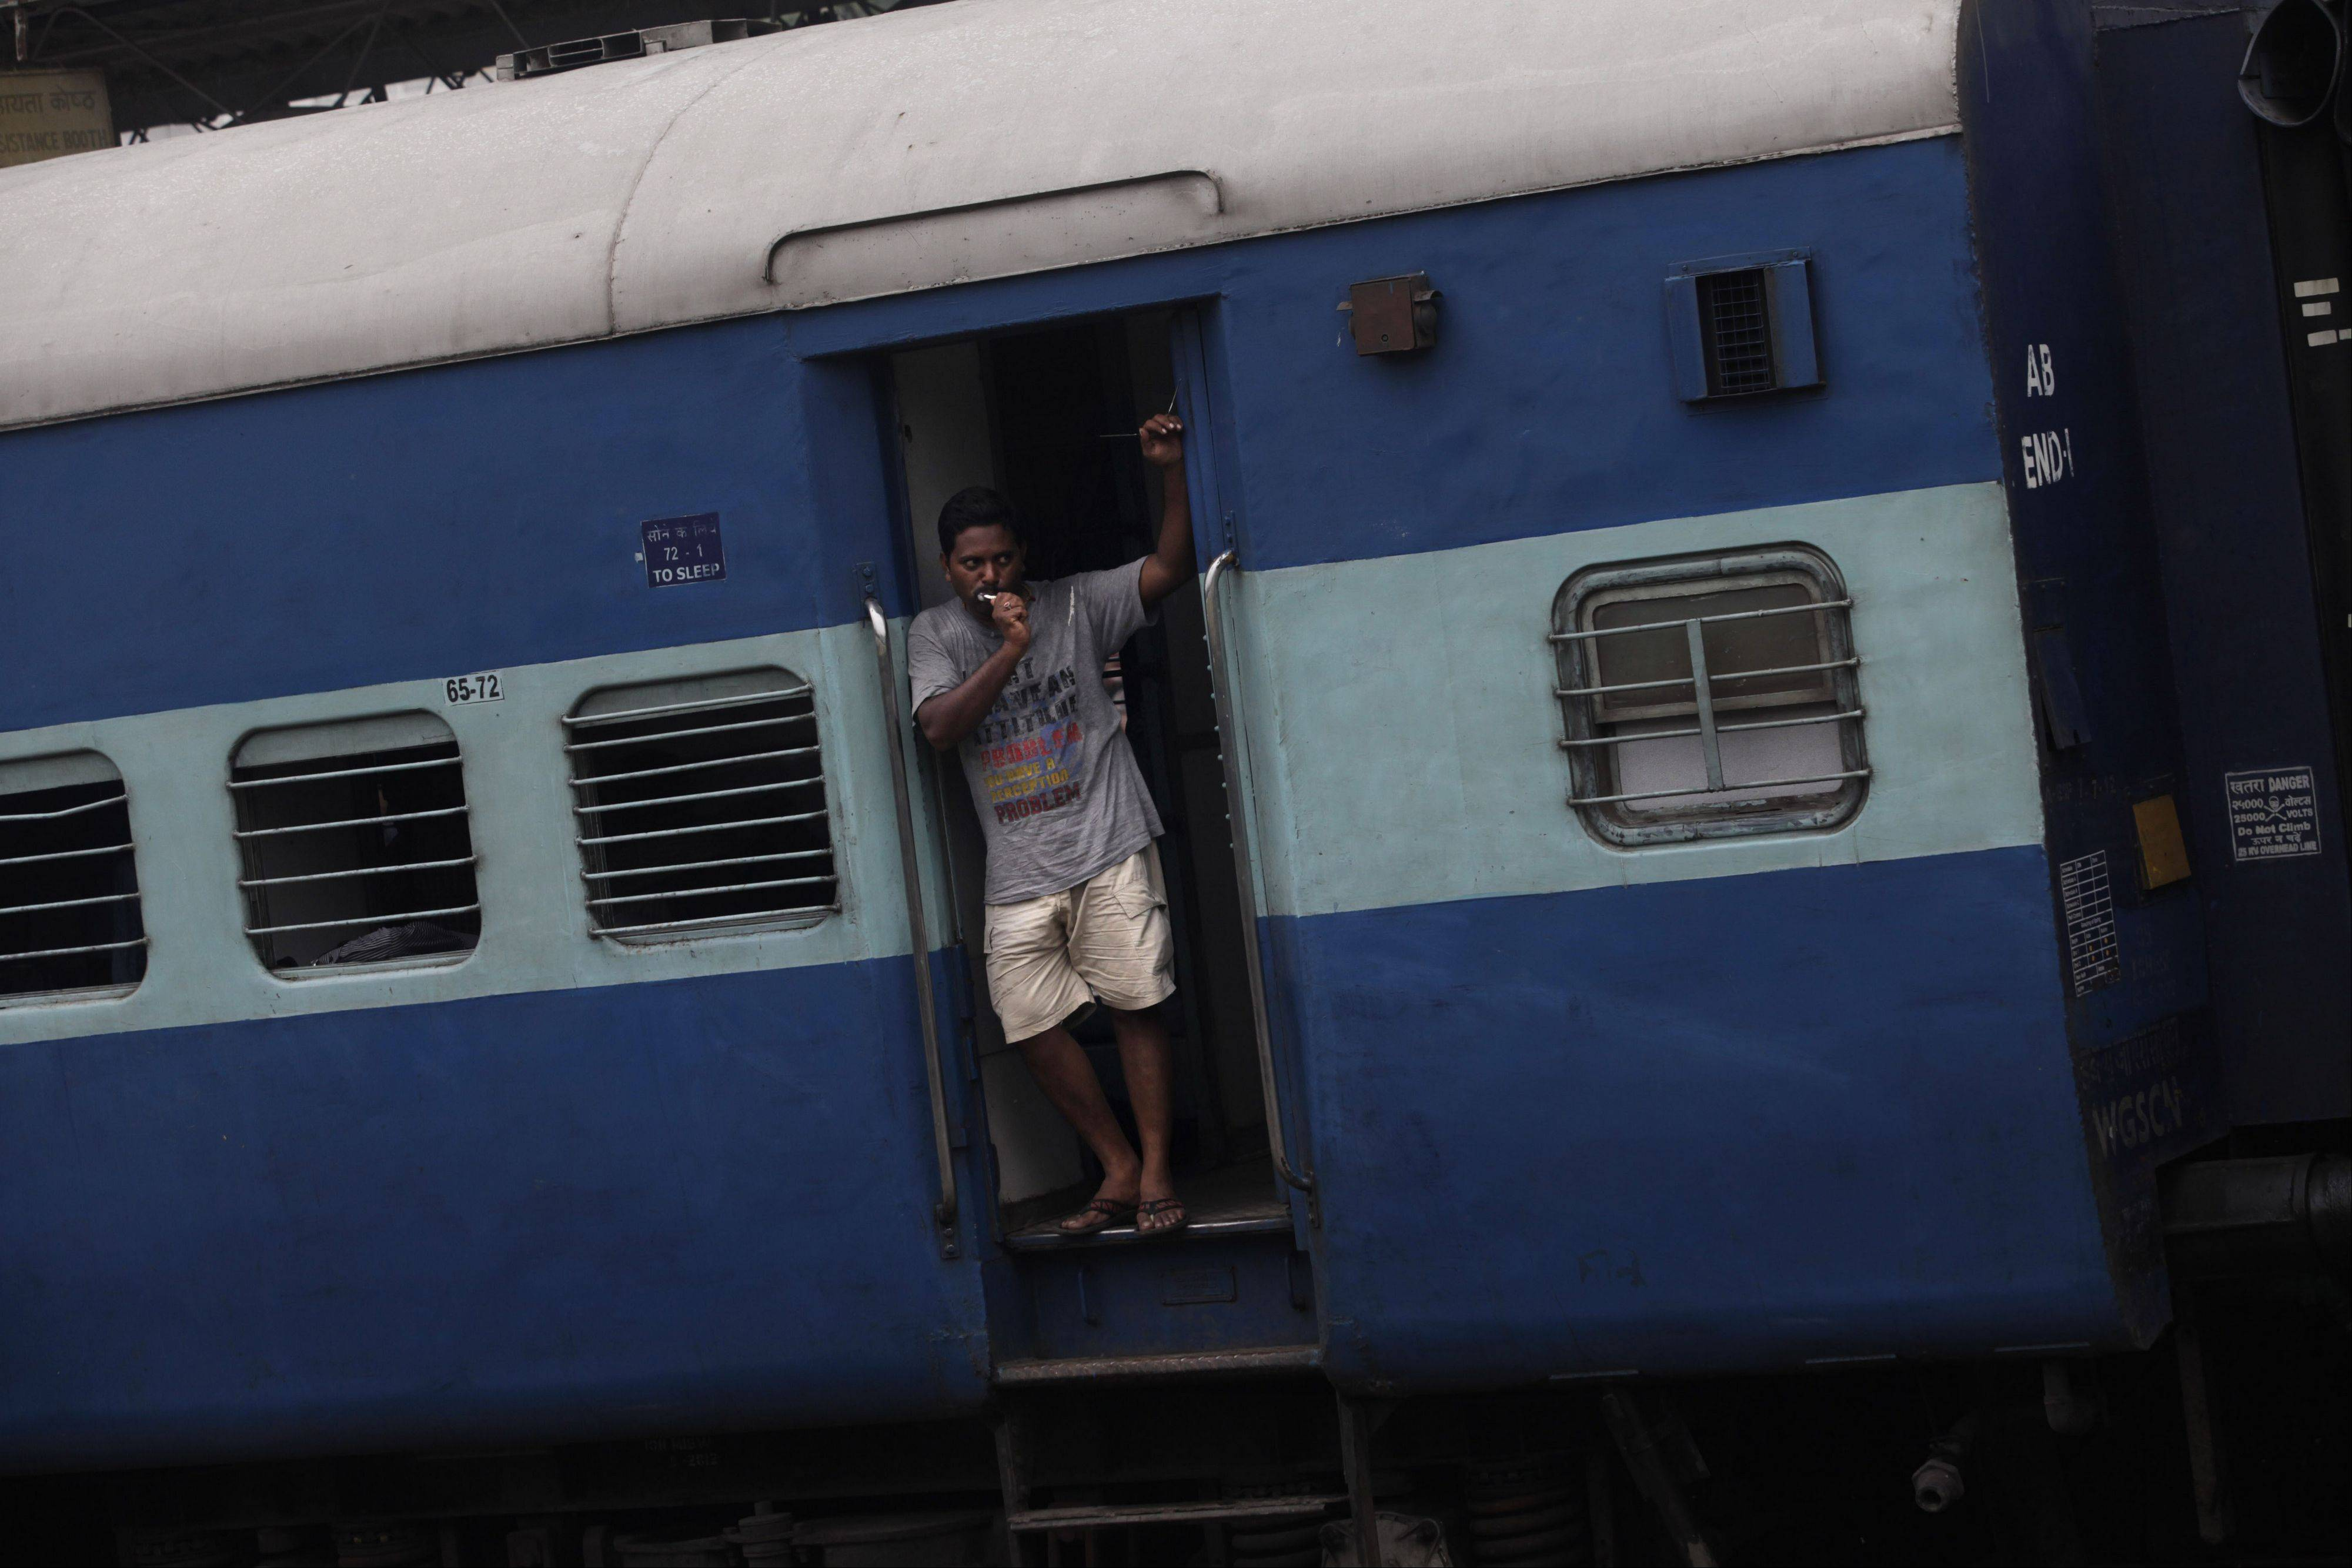 A stranded passenger brushes his teeth at the door of a stationary train compartment following the power outage that struck in the early hours of Monday at a train station in New Delhi, India. A major power outage struck northern India, plunging cities into darkness and stranding hundreds of thousands of commuters.